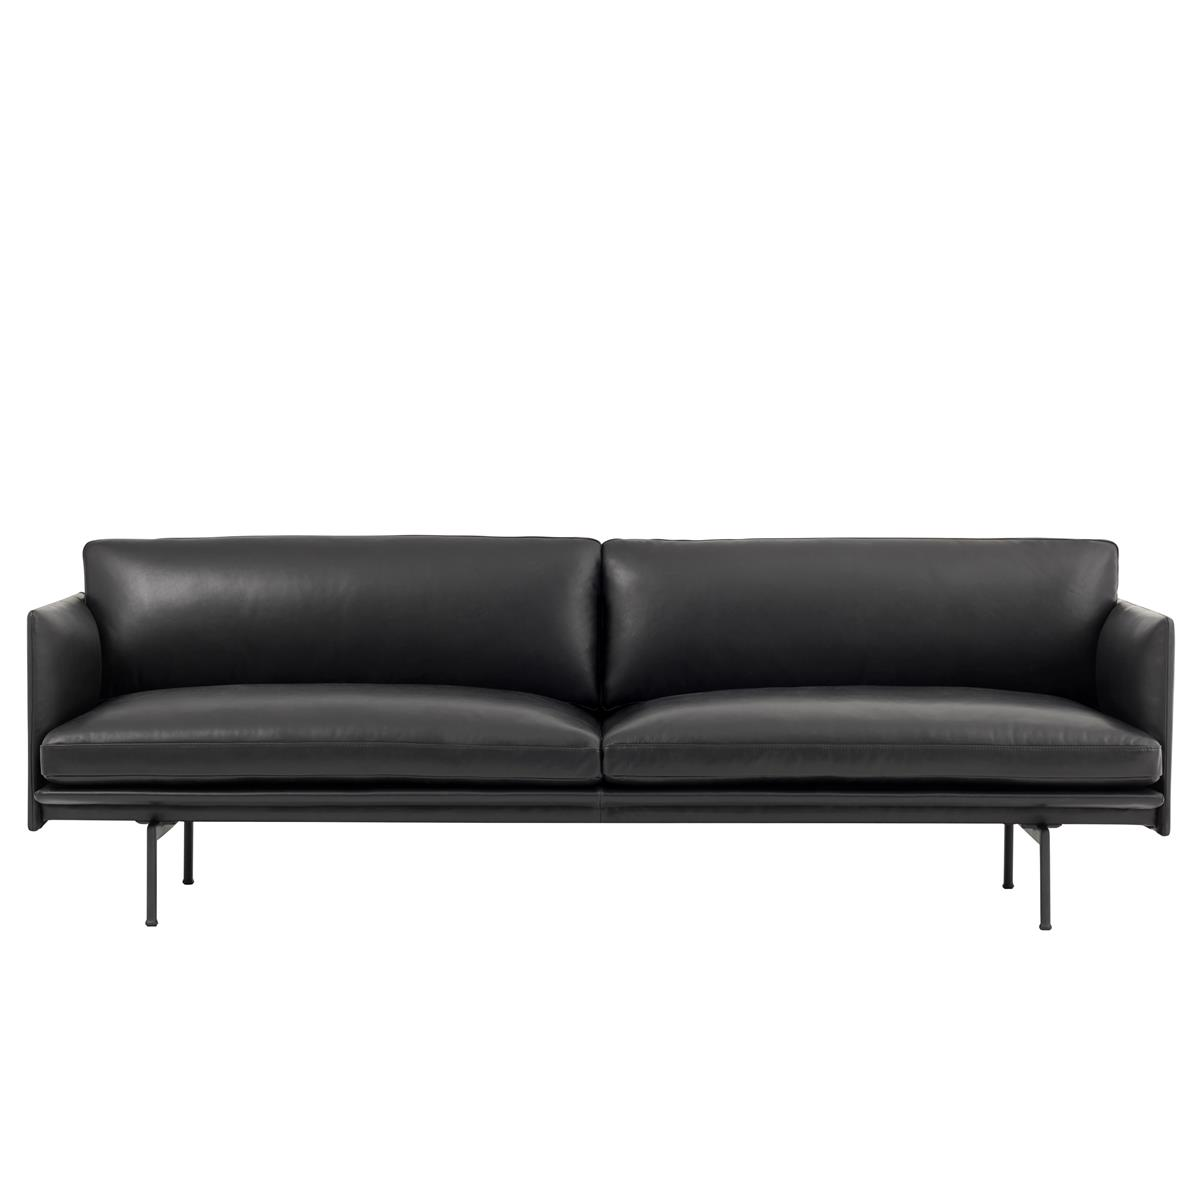 Outline Sofa 3 Seater - Black Silk Leather & Black